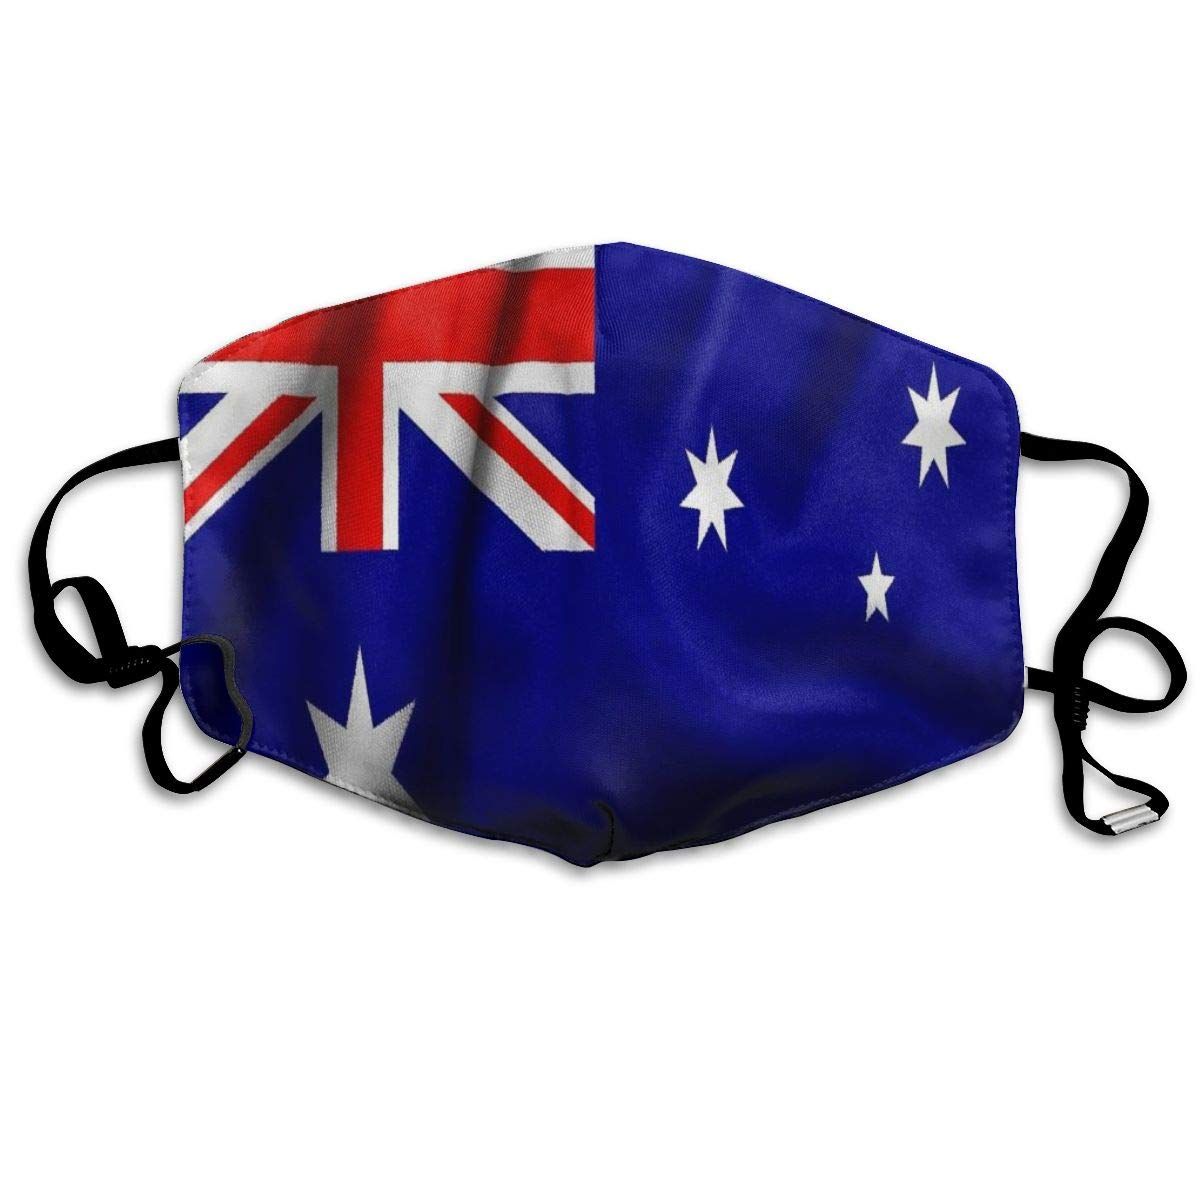 Dustproof   Washable Reusable Flag Of Australia Mouth Cover Mask Protective   Warm Windproof Mask